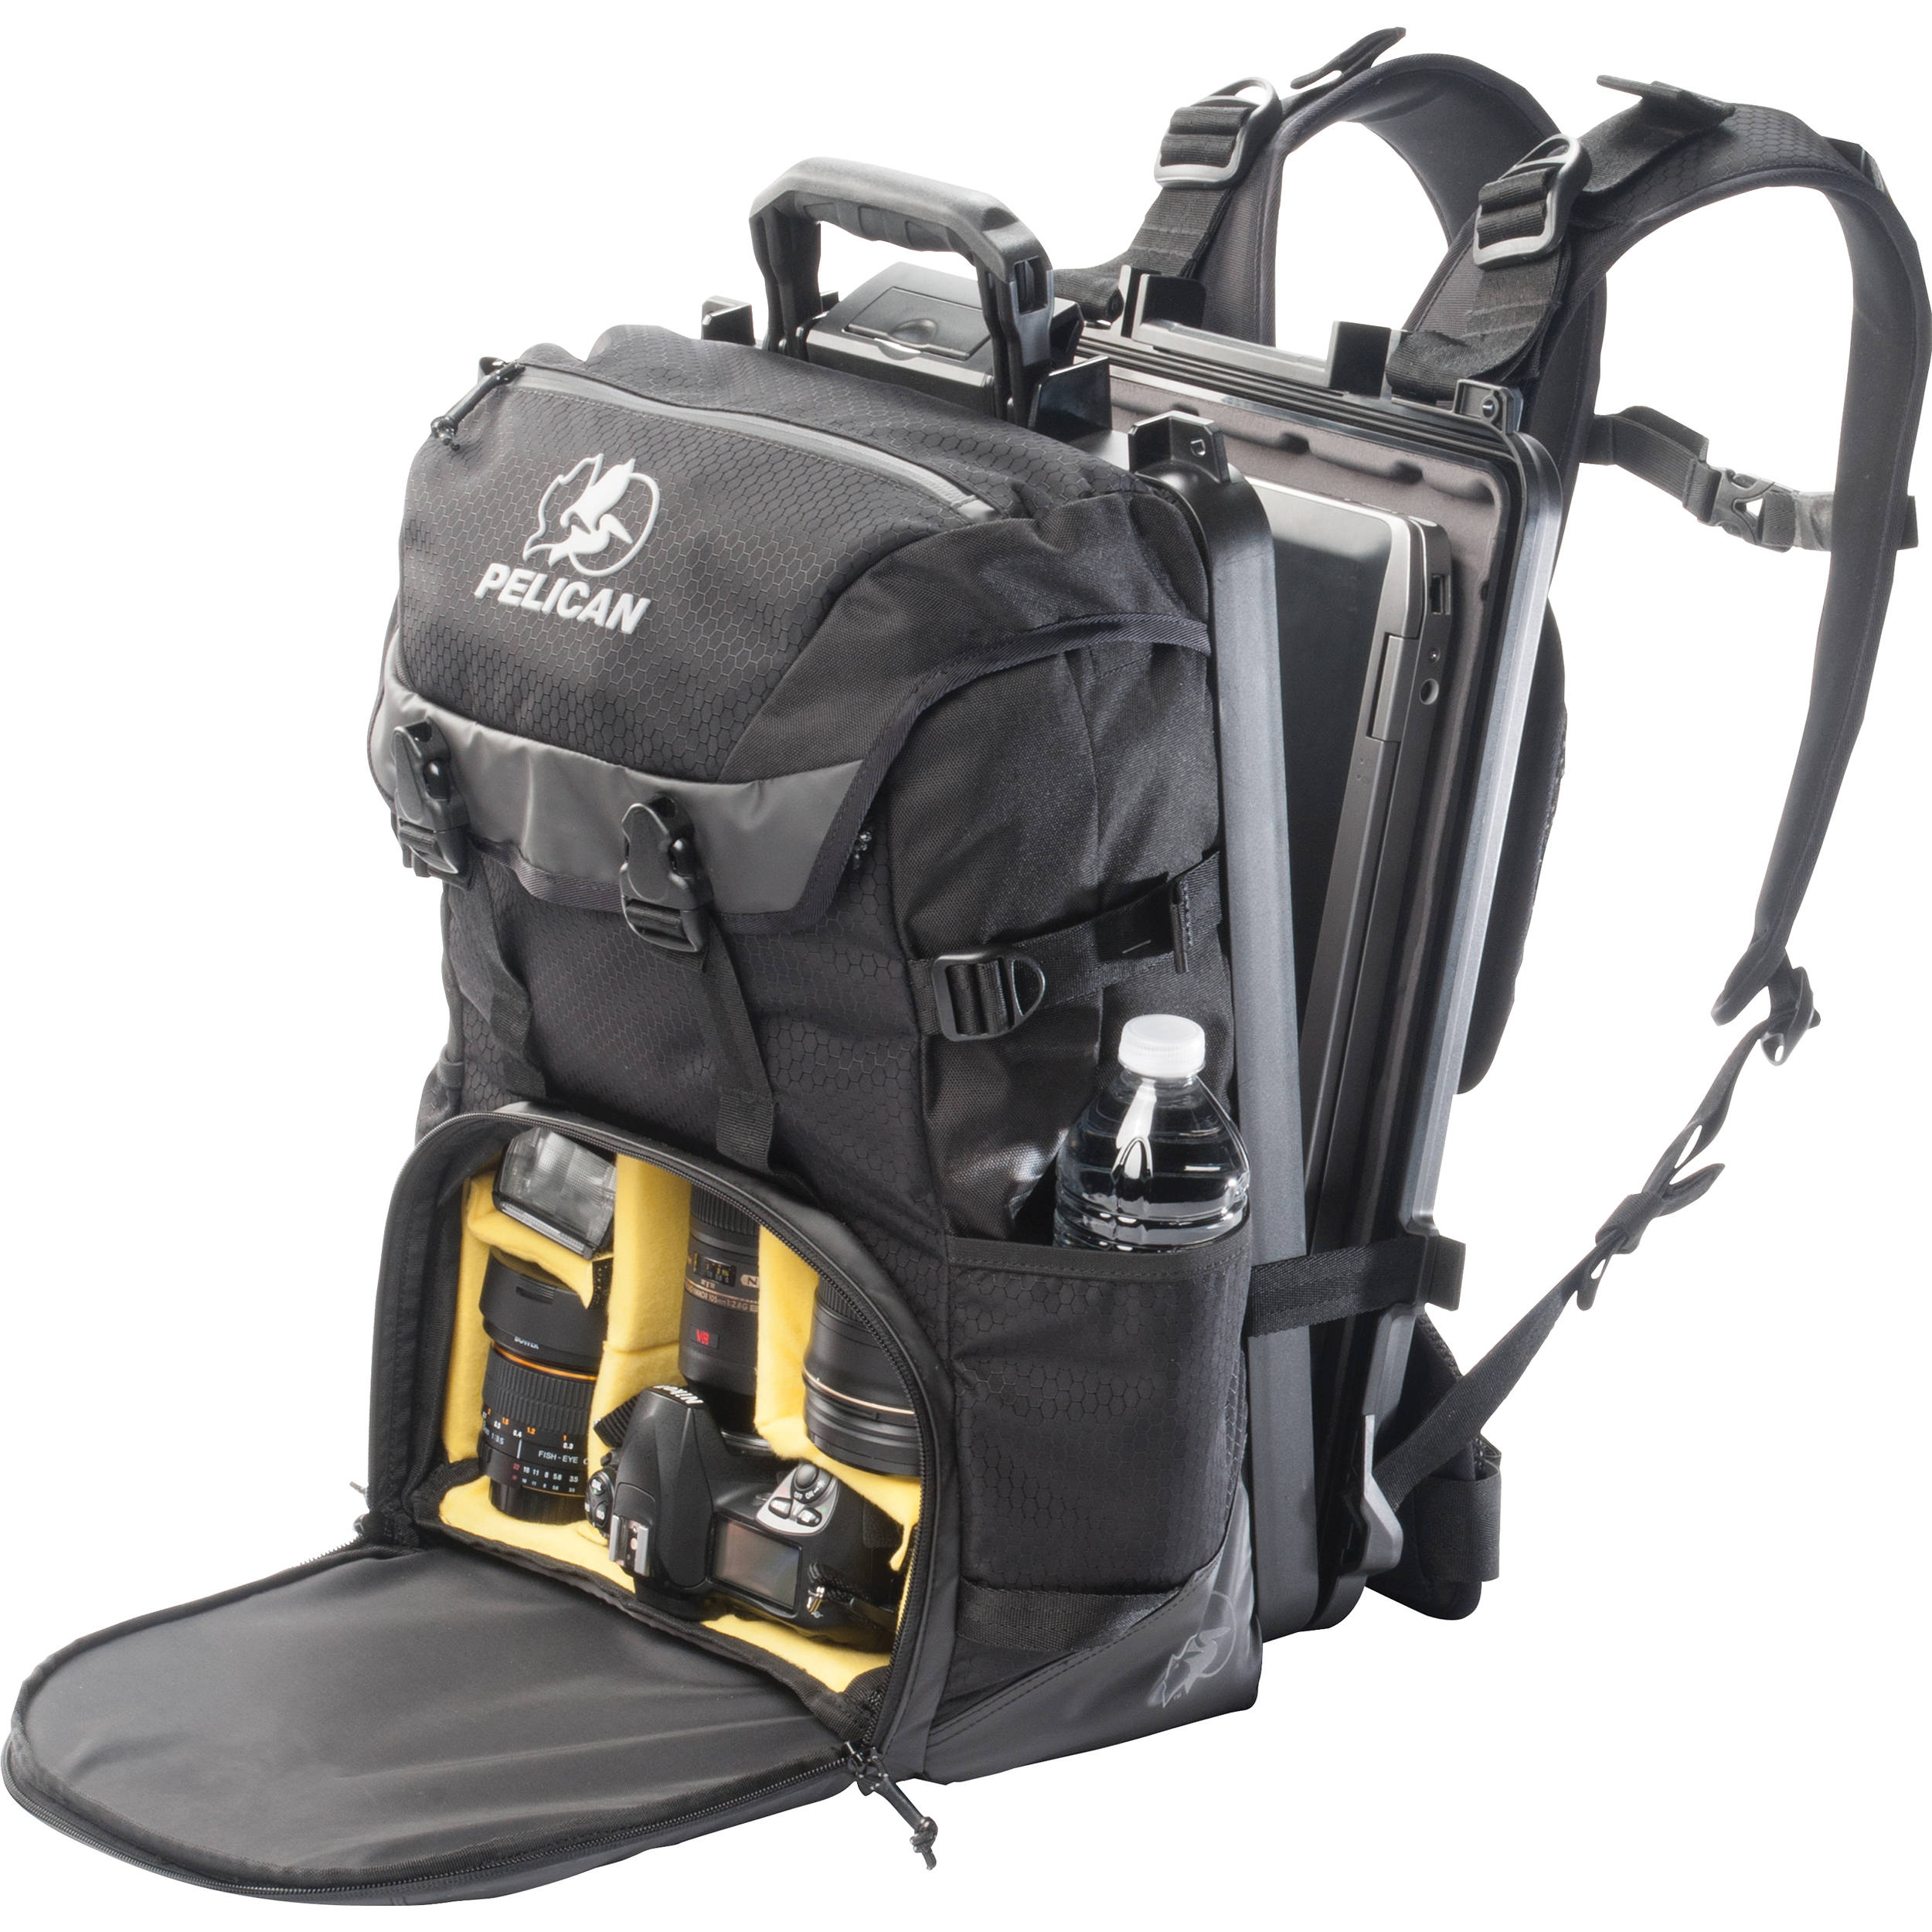 Pelican ProGear Backpacks Provide Robust Protection with Ergonomic ...